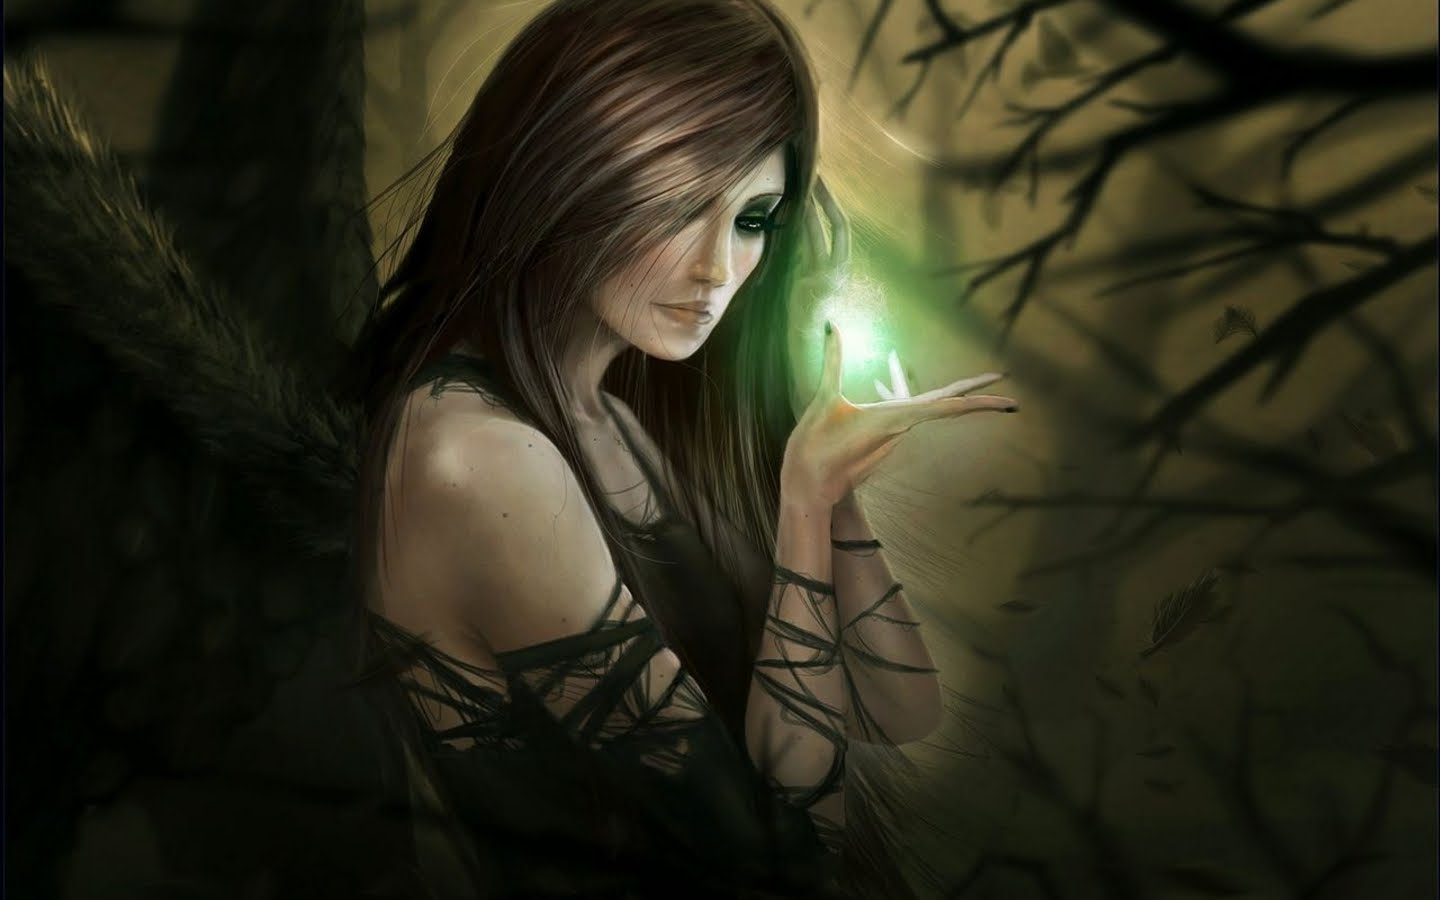 http://4.bp.blogspot.com/_KLJU3hHDGVM/TH-H6kNwkJI/AAAAAAAAD9M/72TZyd19qUQ/s1600/Fantasy%20women%20free%20wallpapers.jpg